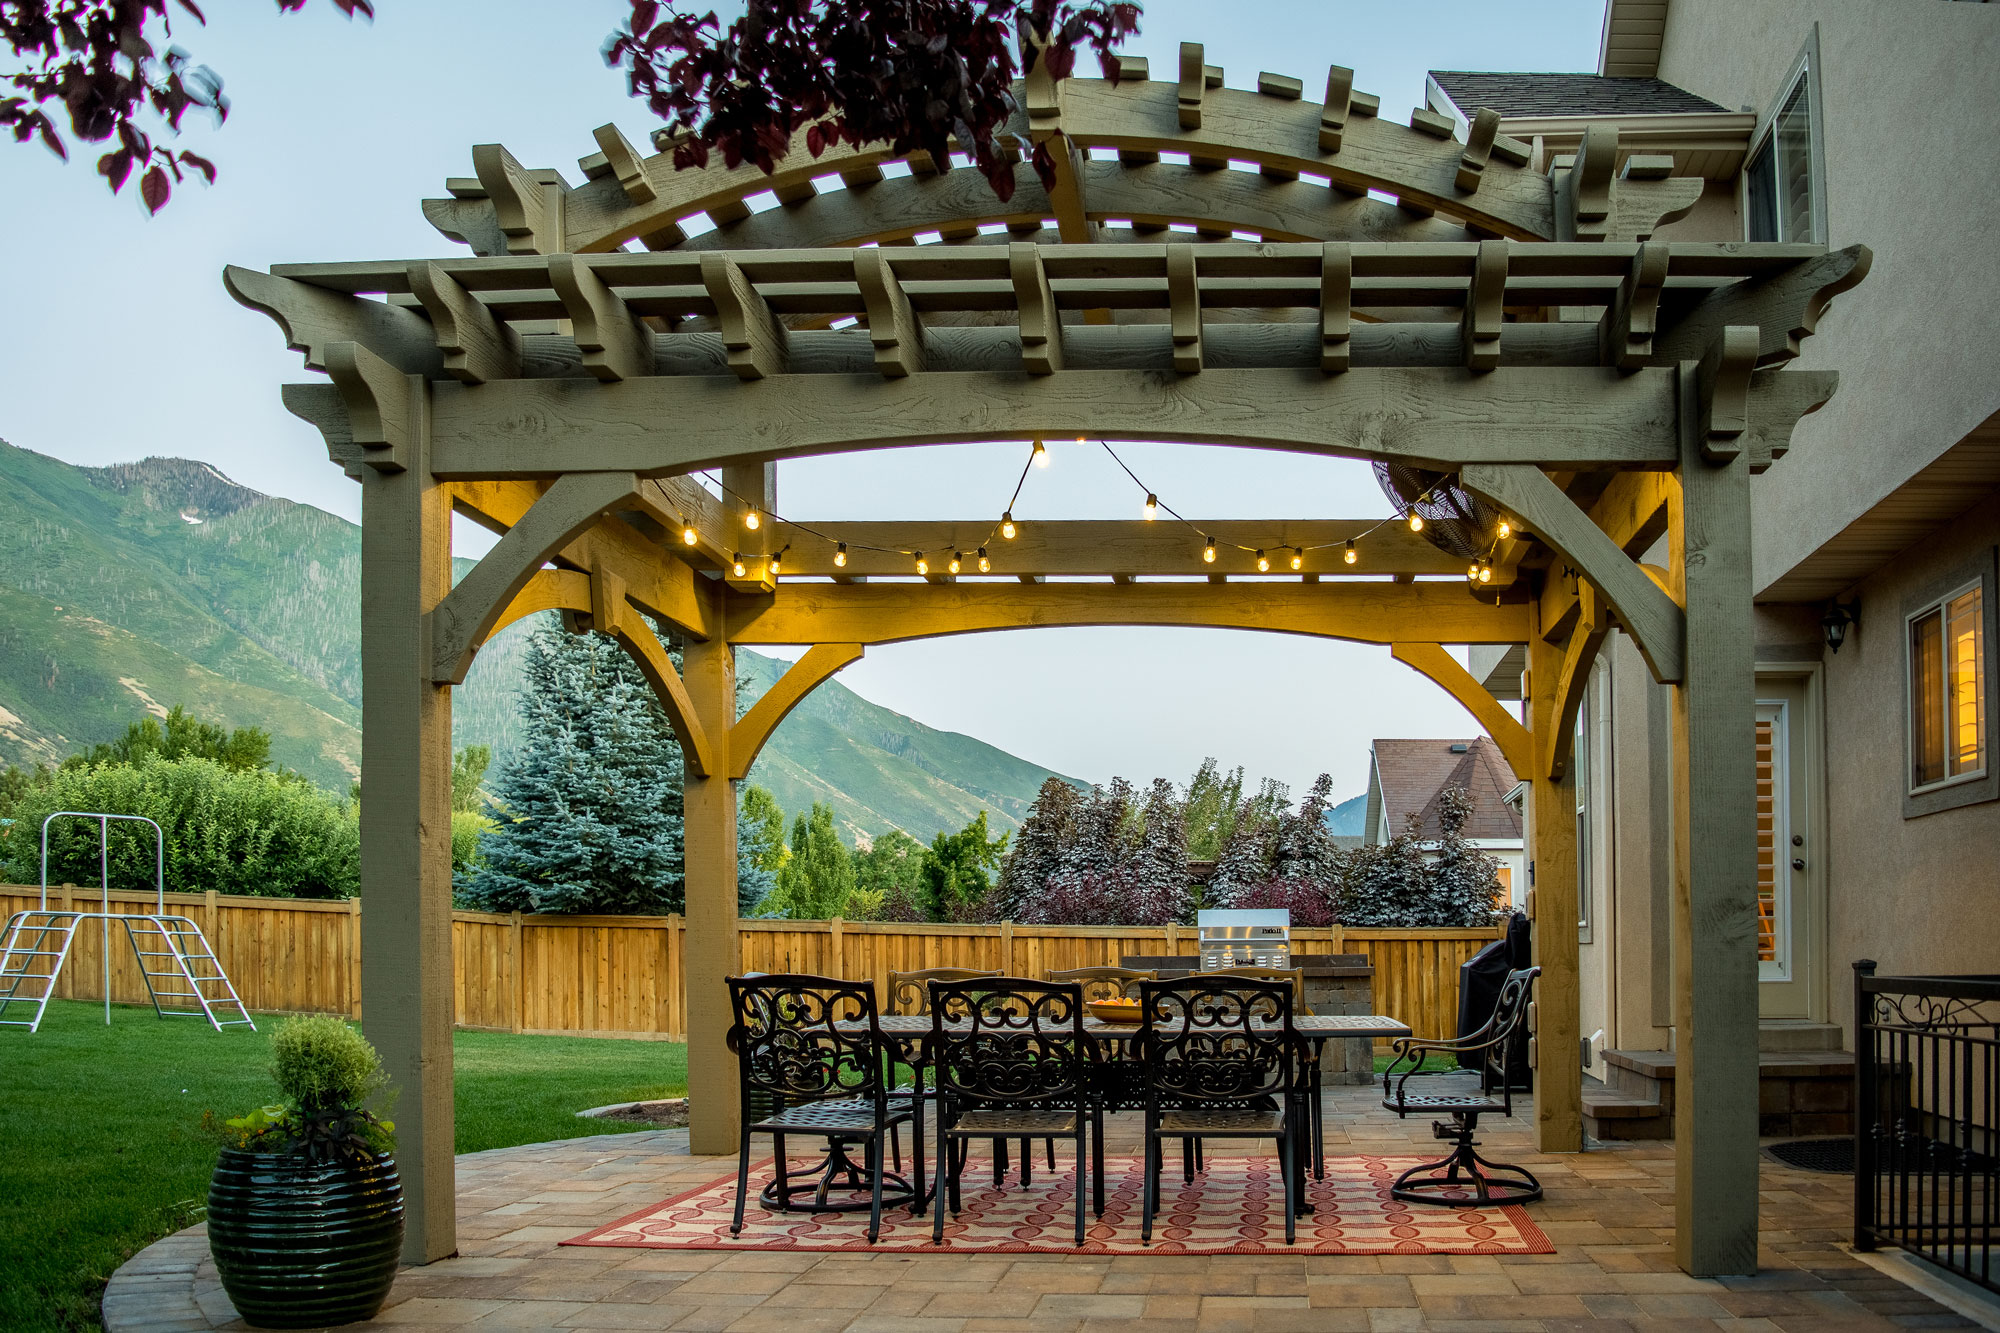 Why Should You Install Beautiful Pergola In Your Outdoor Space?